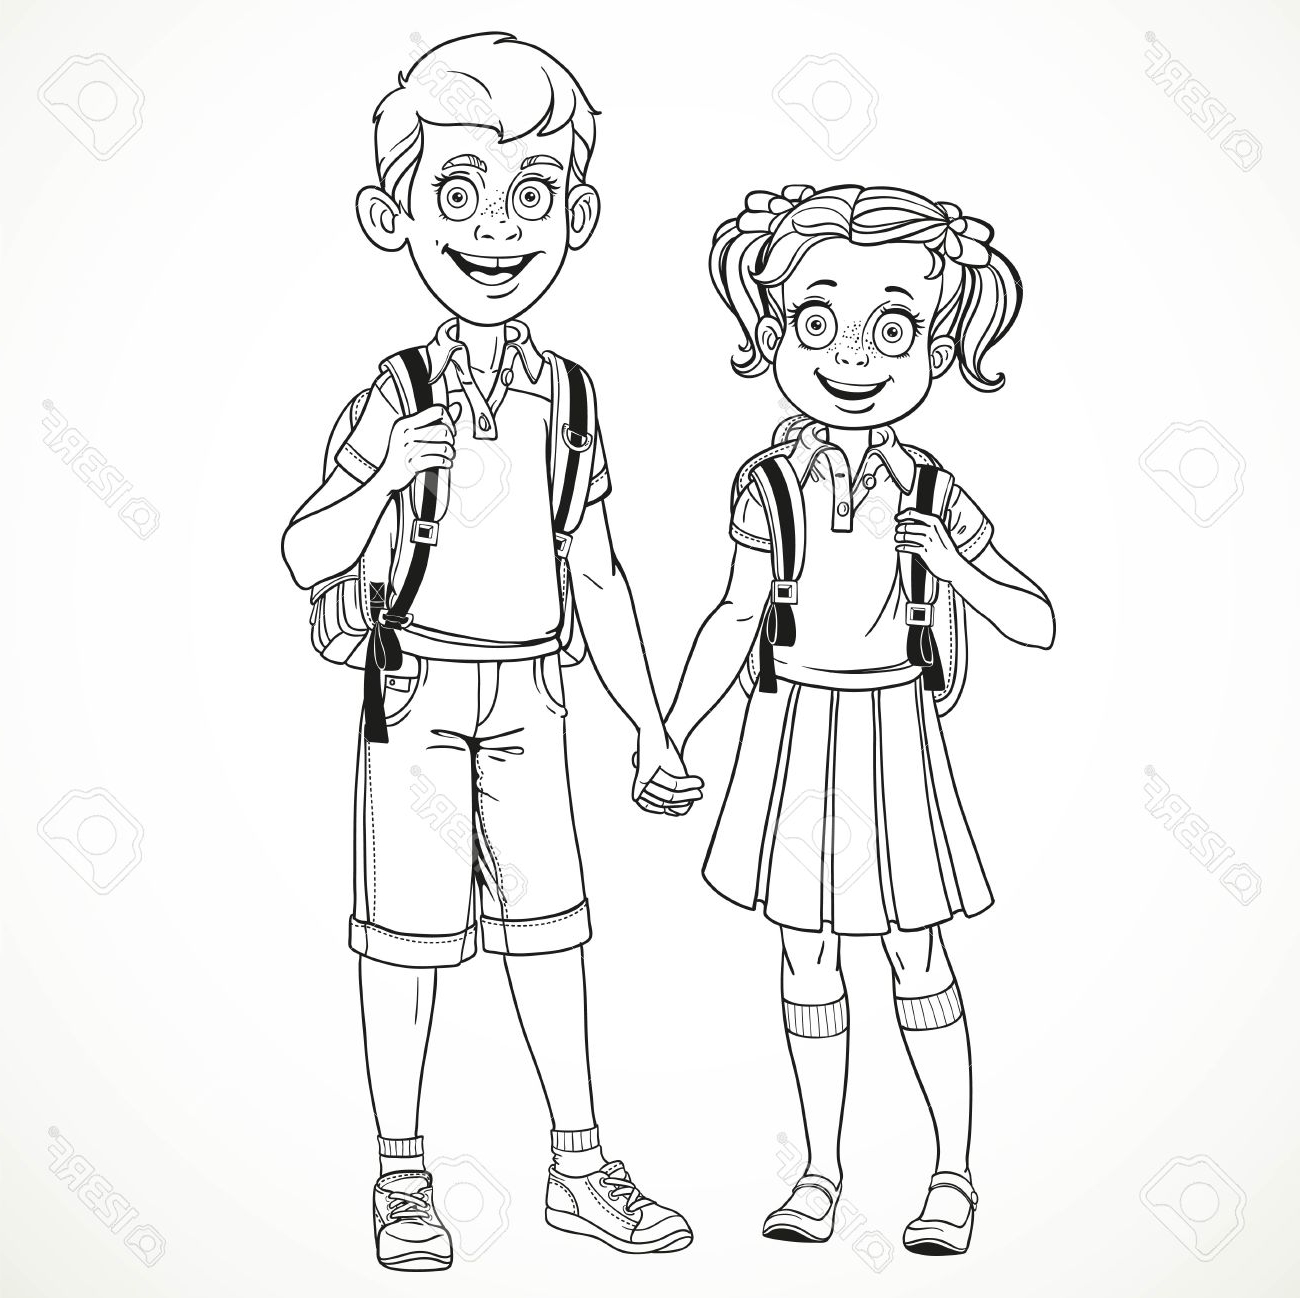 1300x1298 Boy And Girl Holding Hands Drawing Cute Girl And Boy Holding Hands